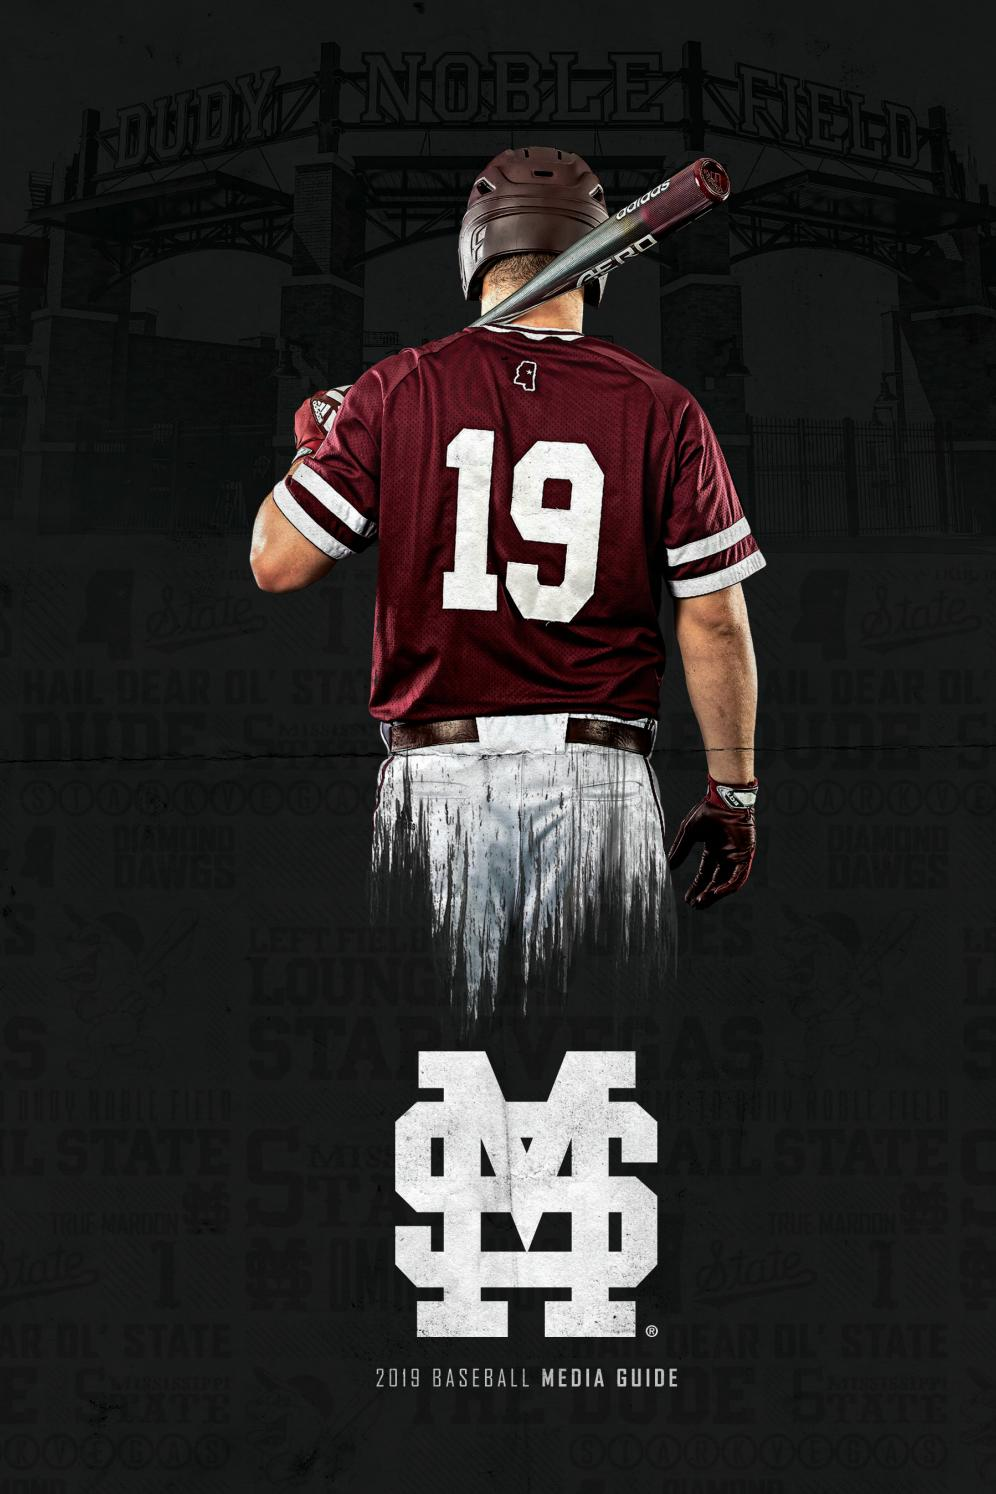 a226d883173c 2019 Mississippi State Baseball Media Guide by Mississippi State University  Athletics - issuu